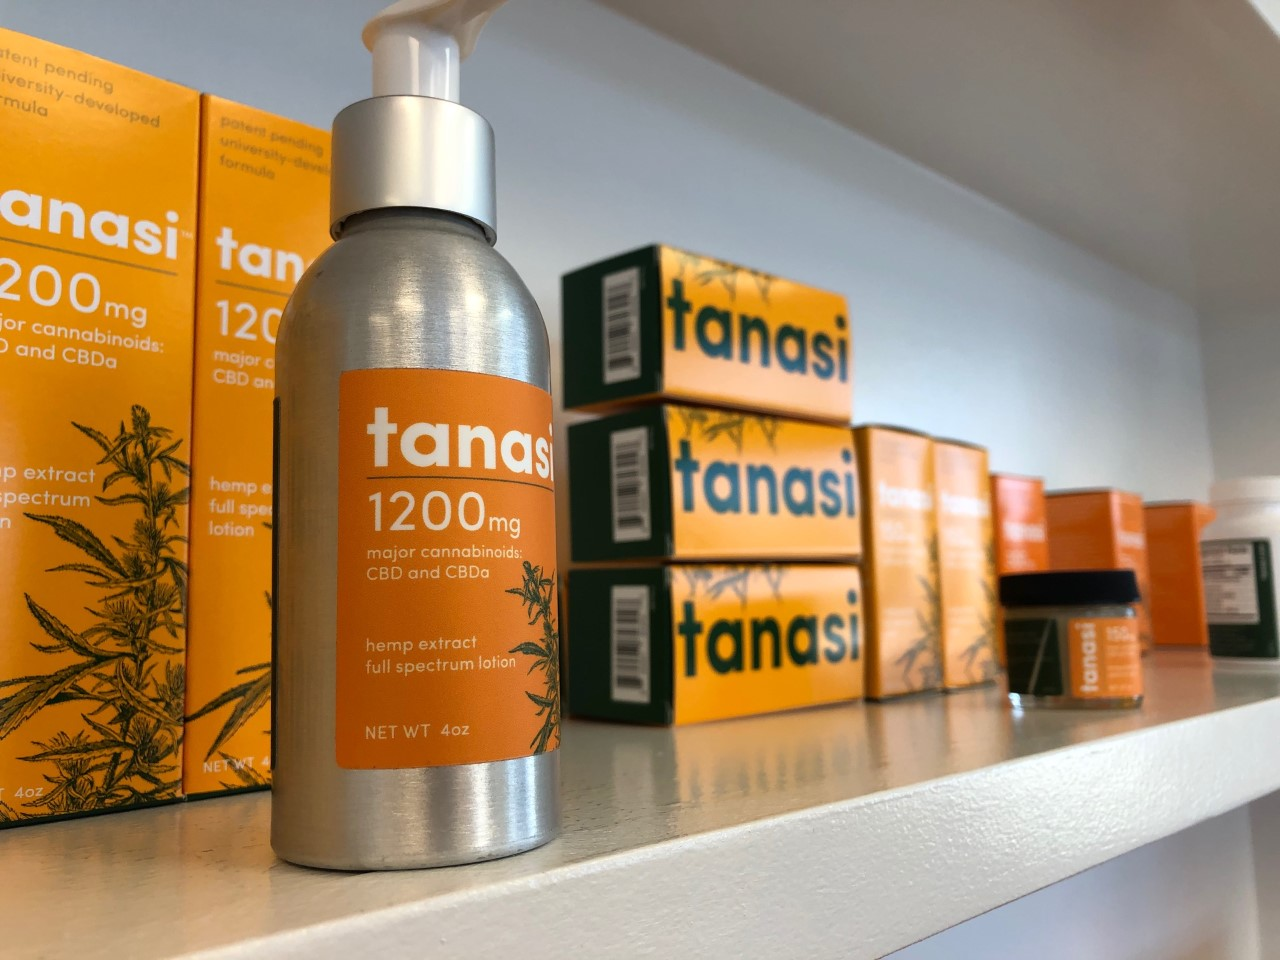 Tanasi CBD products